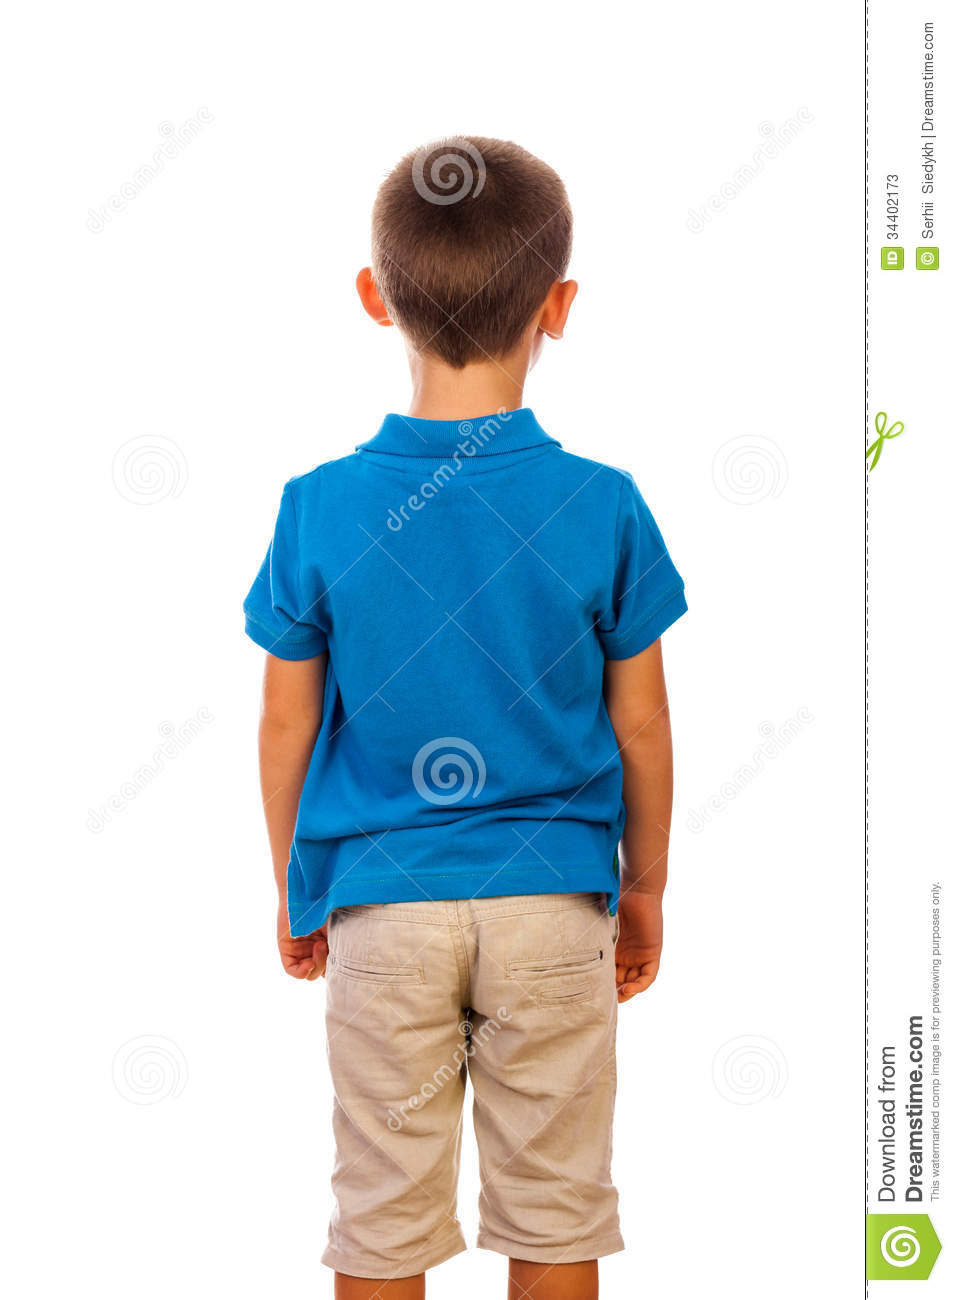 ... boy turned by a back in a shot was photographed on a white background